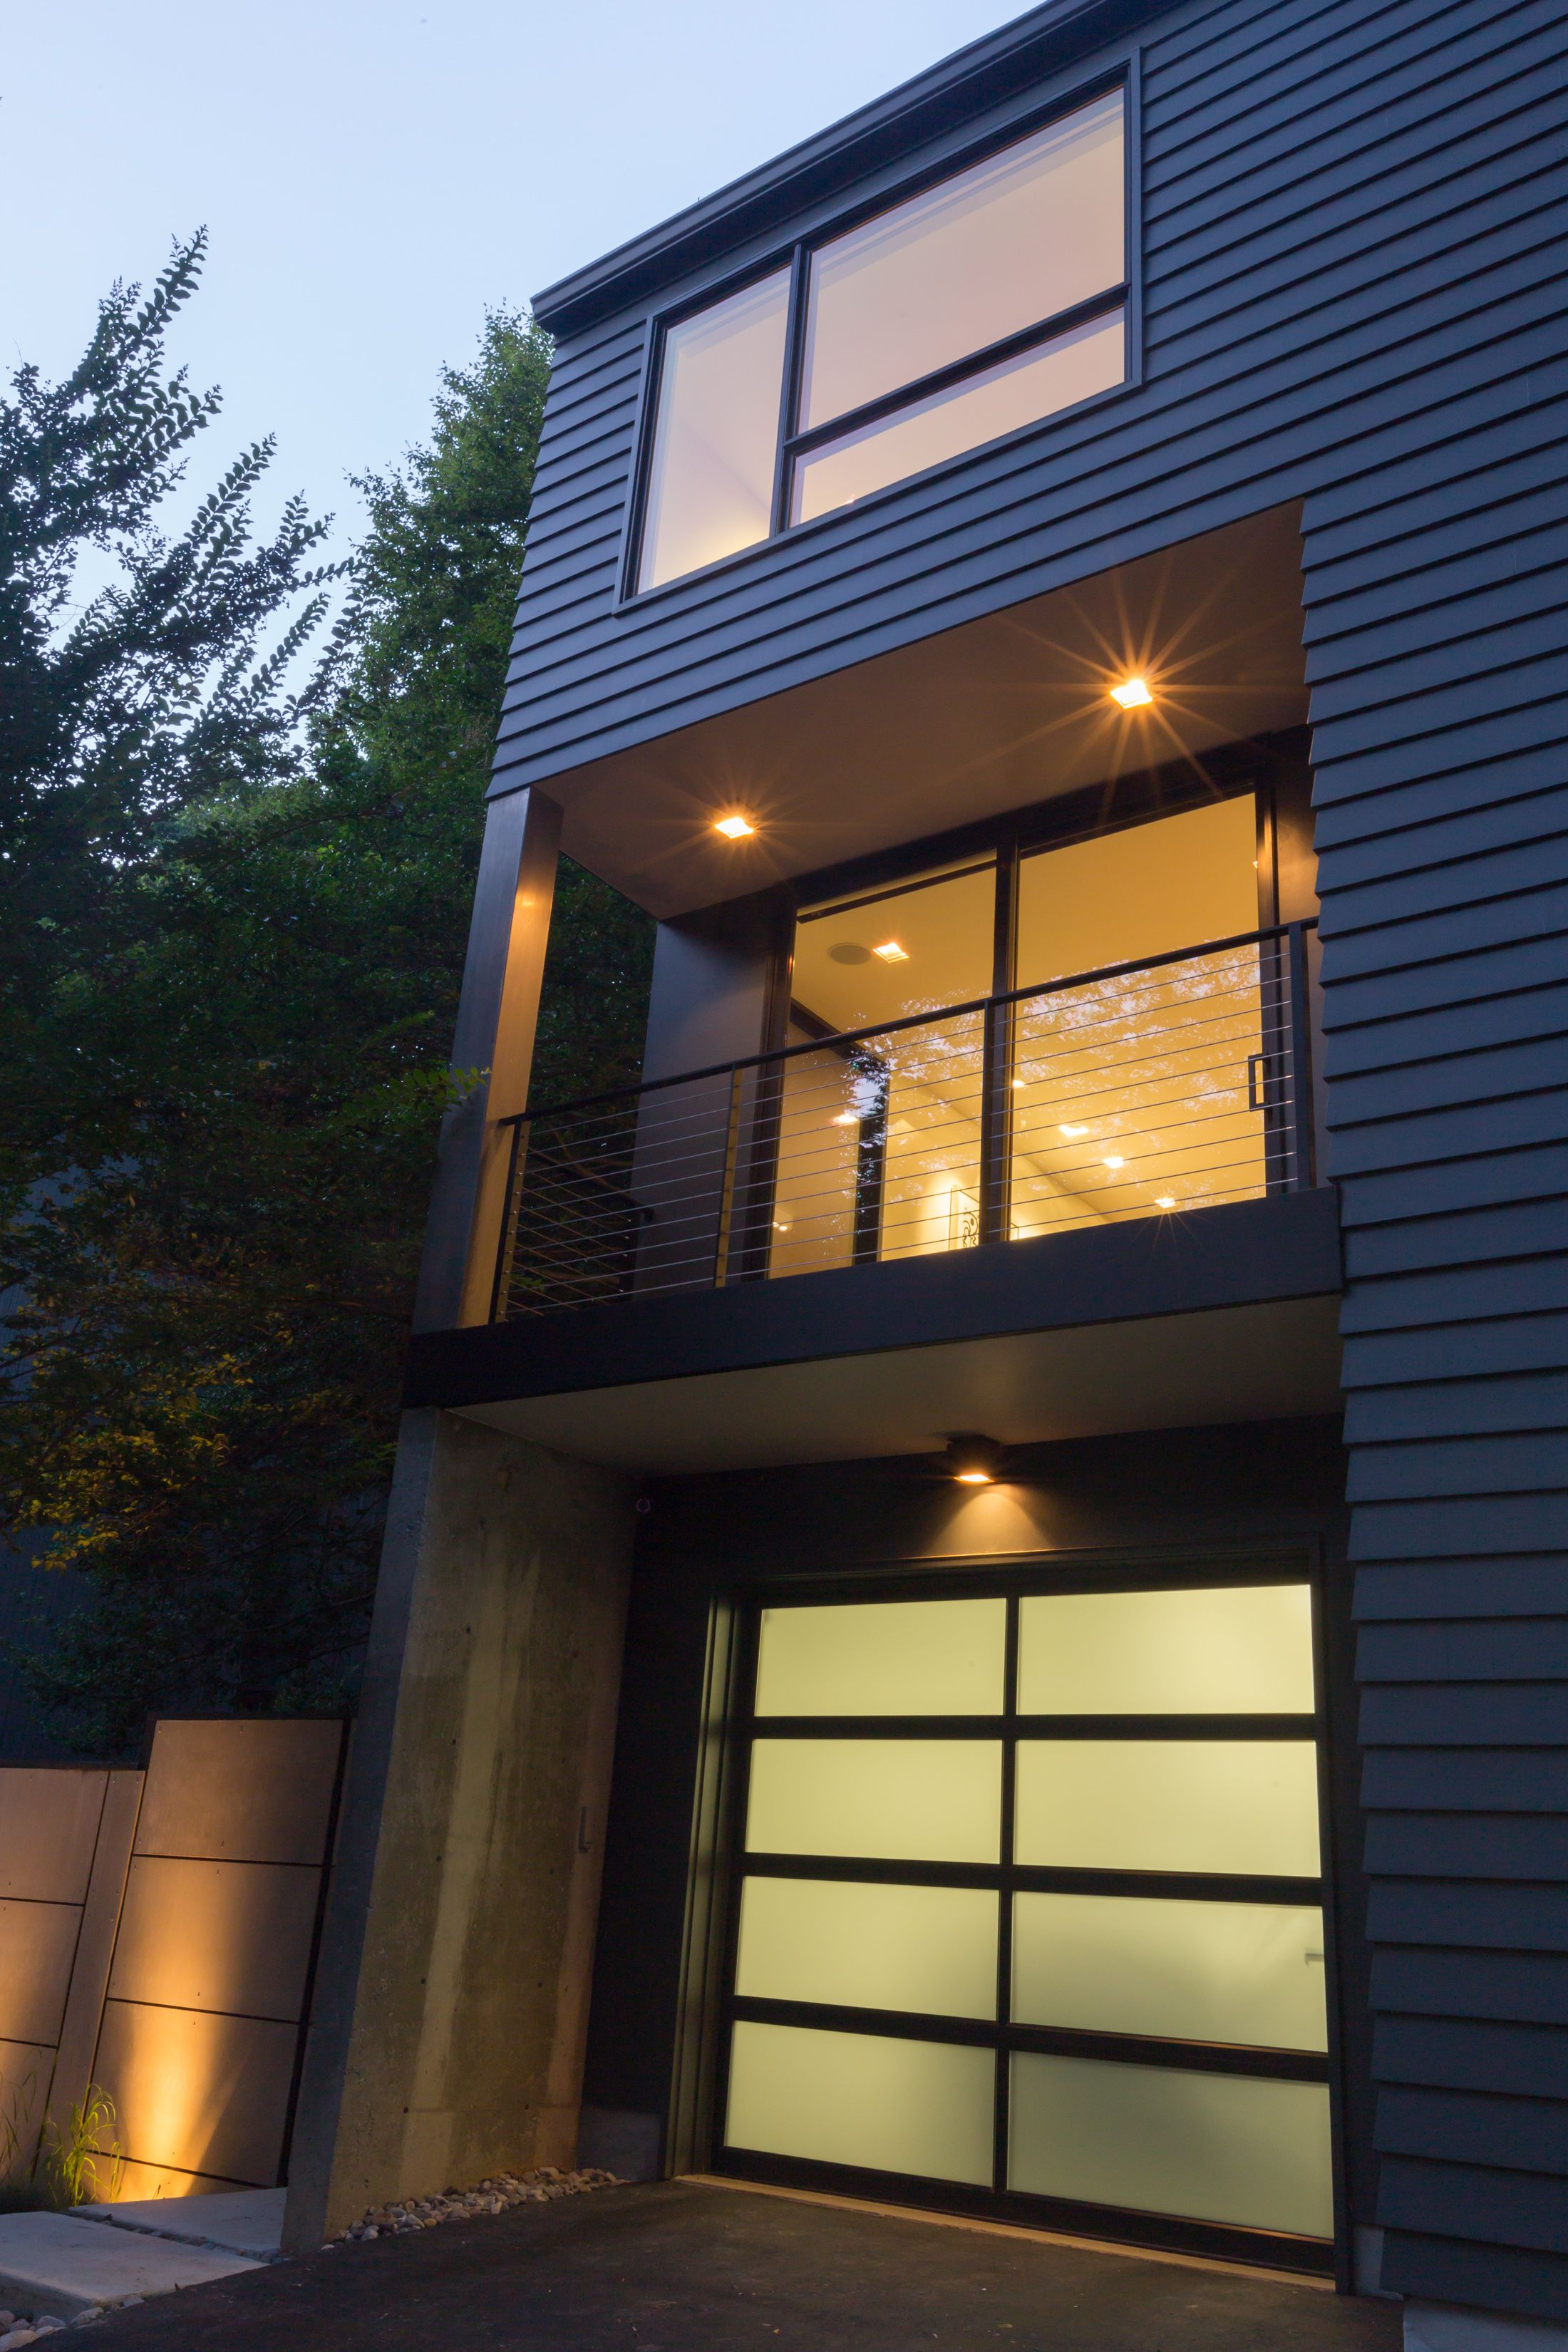 Modern House With Mitered Hardieplank Artisan Siding Aluminum Wrap Board Formed Concrete Wall Steel And Cables R Hardie Plank Modern House Glass Garage Door